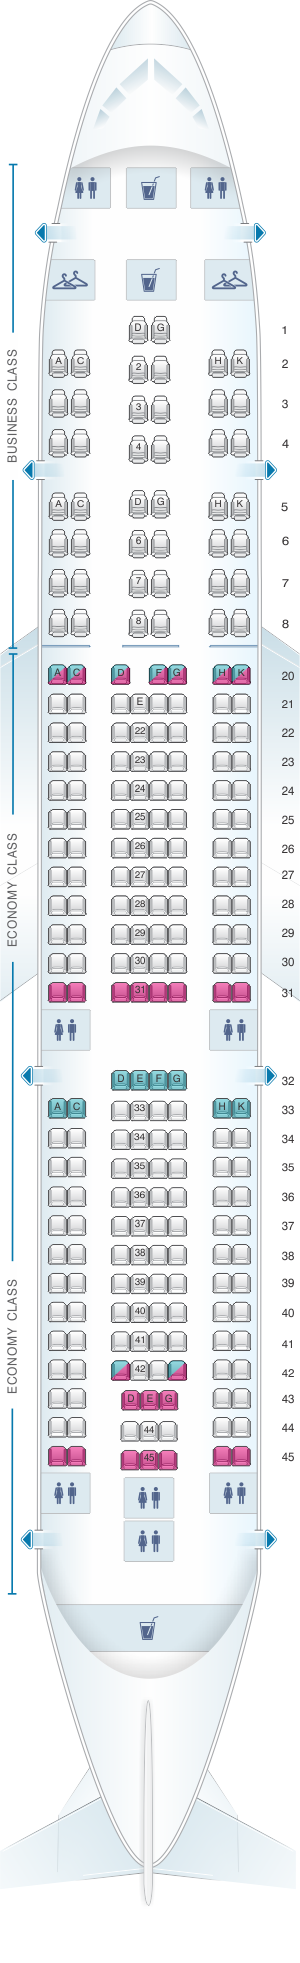 airbus a330 200 seat map Seat Map Mea Airbus A330 200 Seatmaestro airbus a330 200 seat map